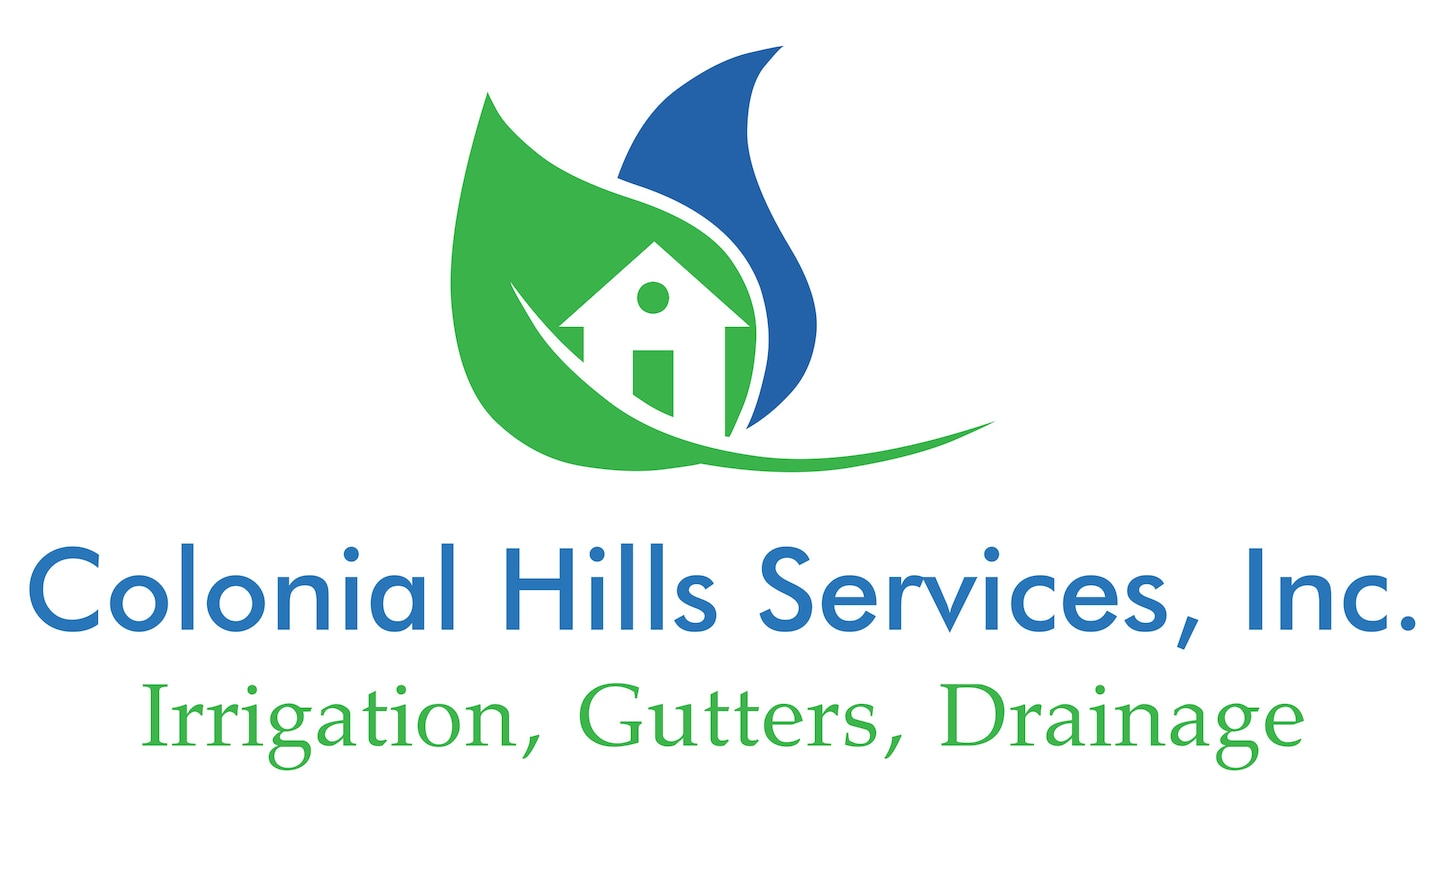 Colonial Hills Services, Inc.